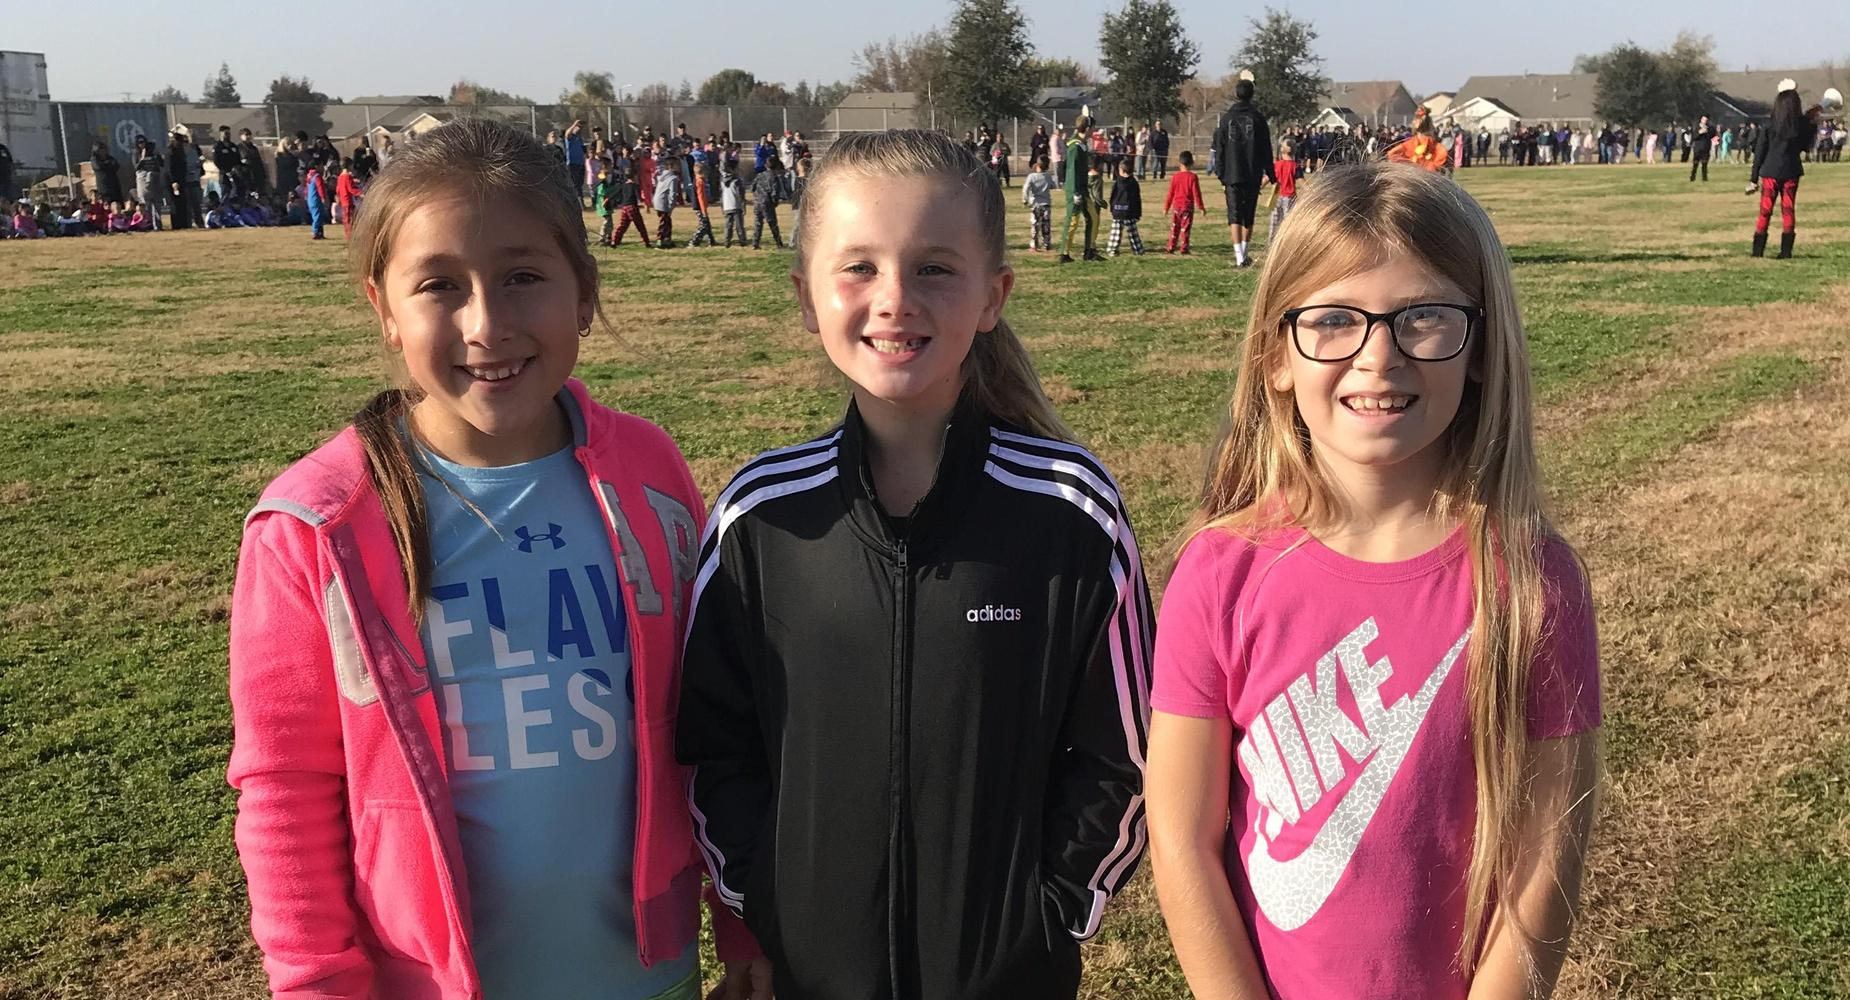 Students participating in our annual Turkey Trot